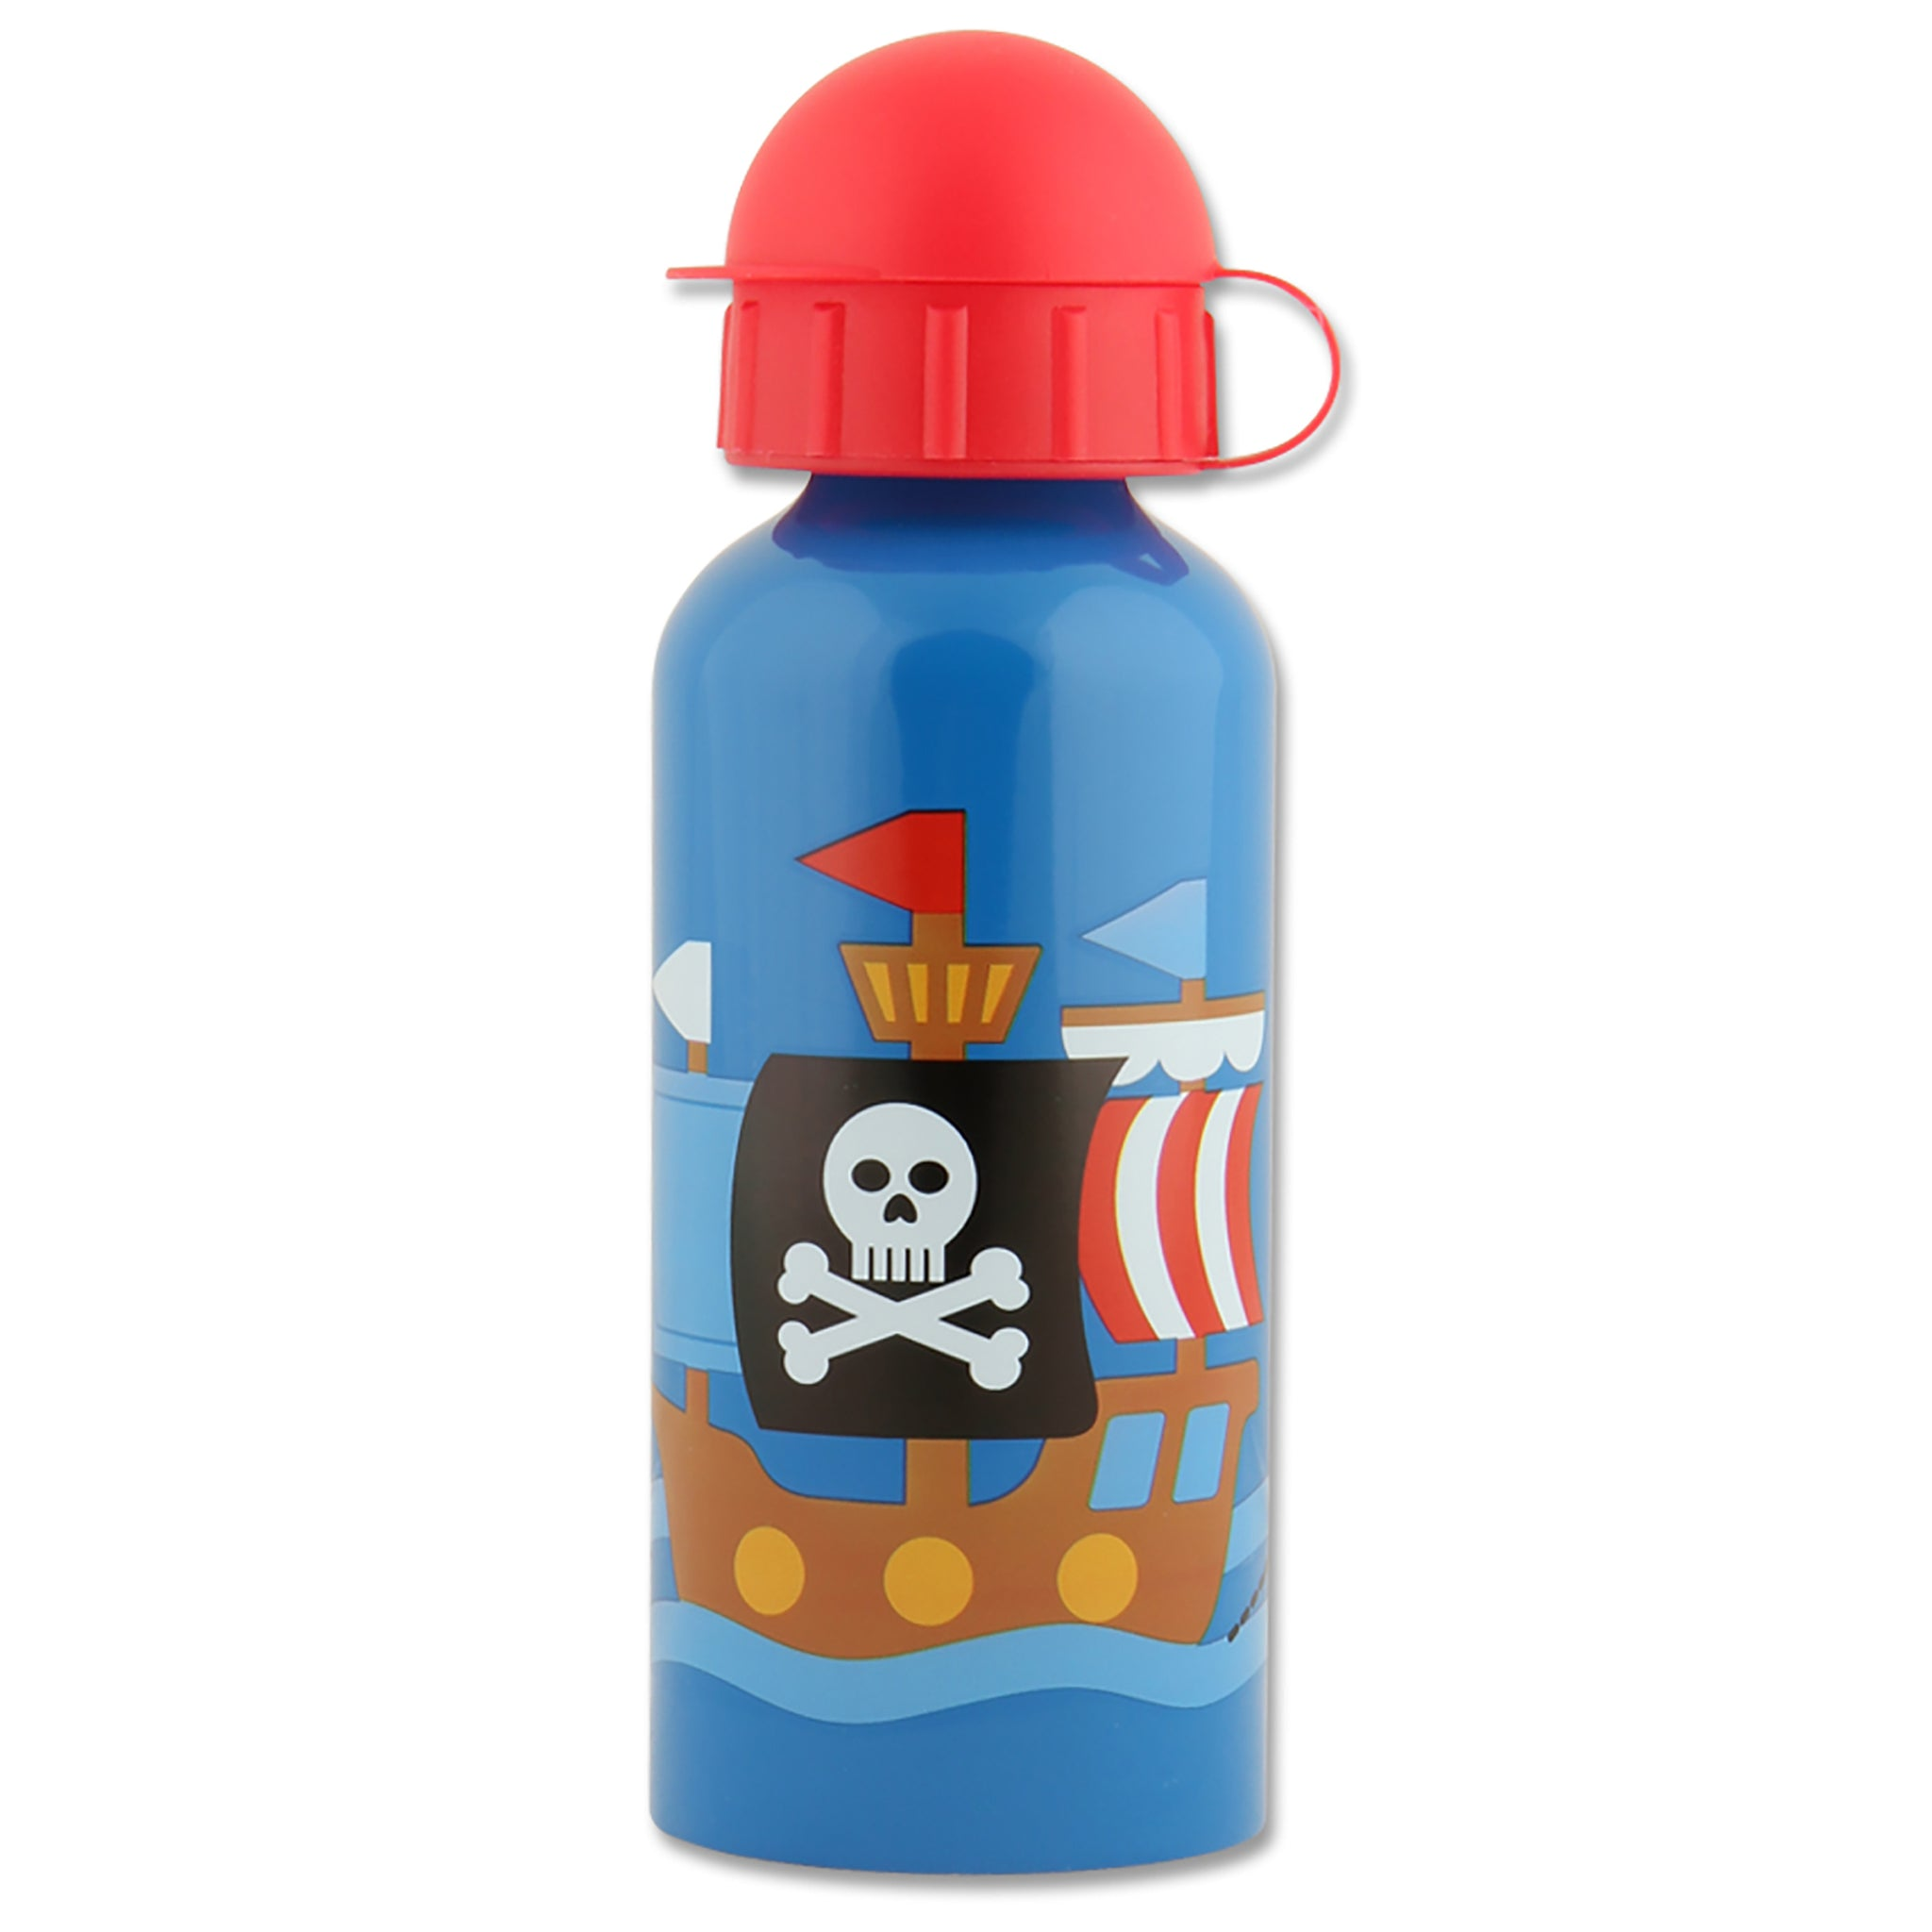 Pirate Stainless steel bottle